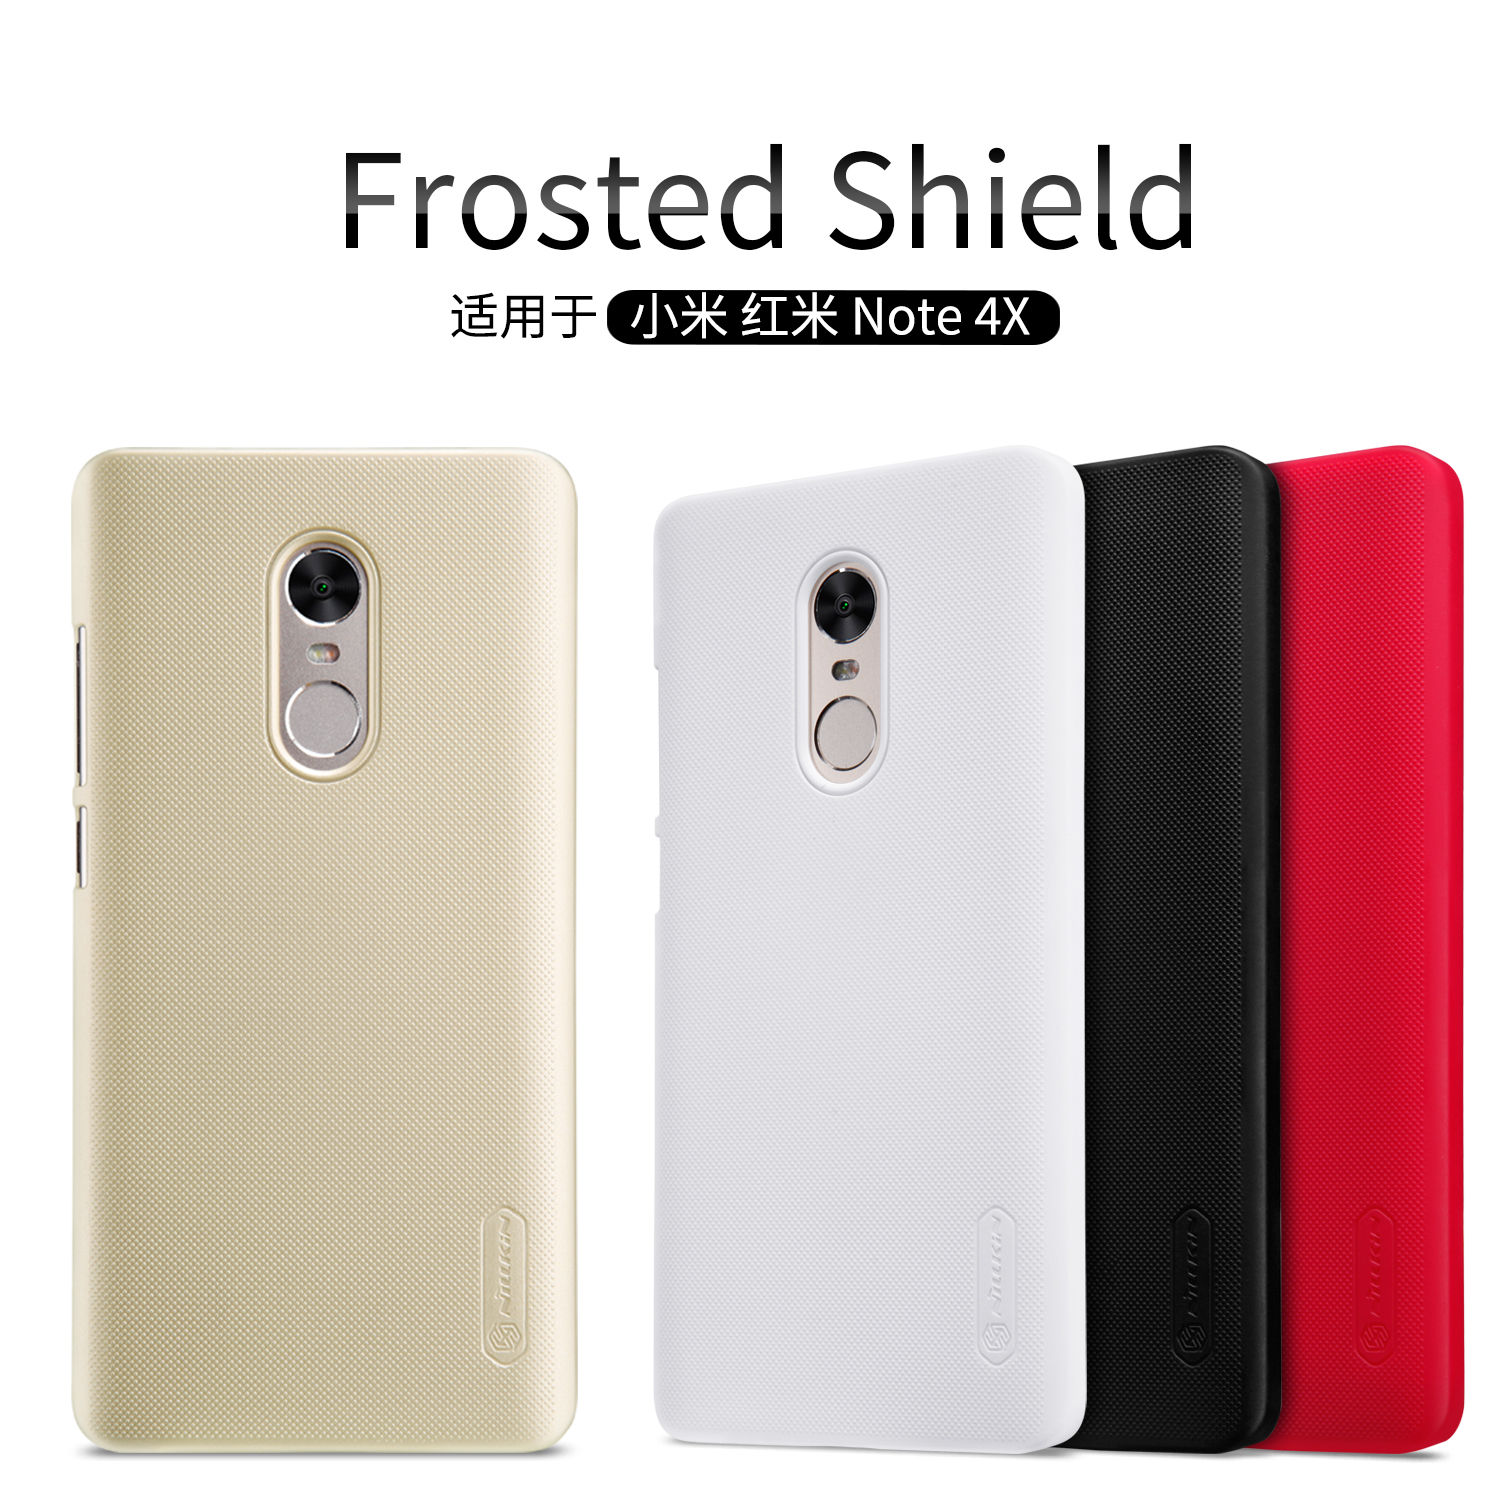 เคส Xiaomi RedMi Note 4X รุ่น Frosted Shield NILLKIN แท้ !!